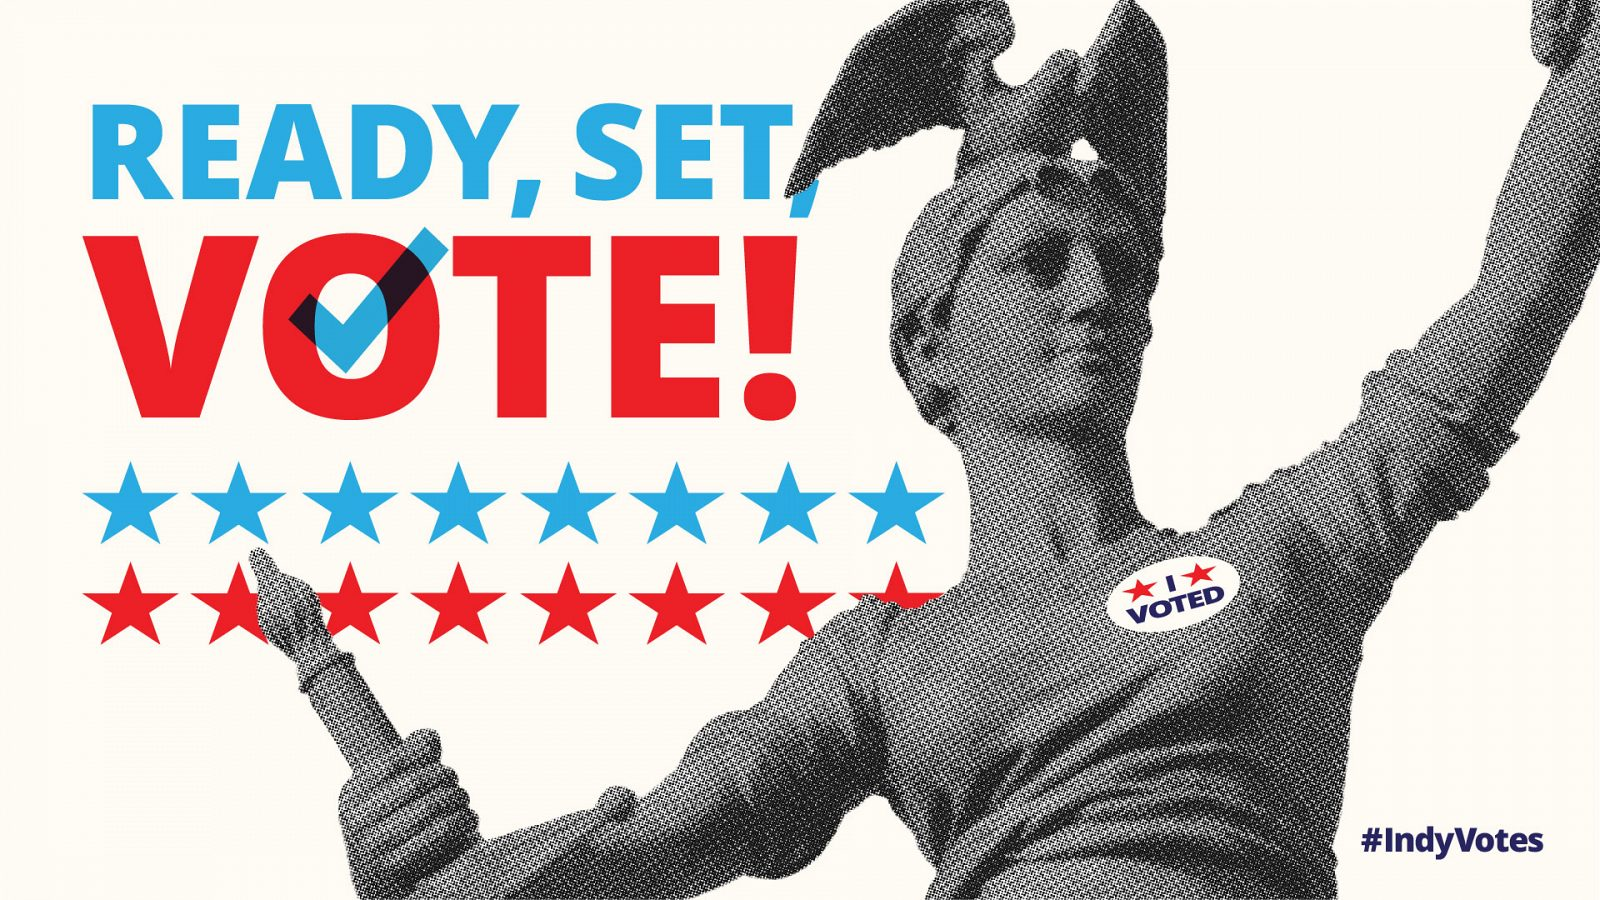 """Lady Victory with """"Ready, set, vote!"""" text, sized for twitter"""